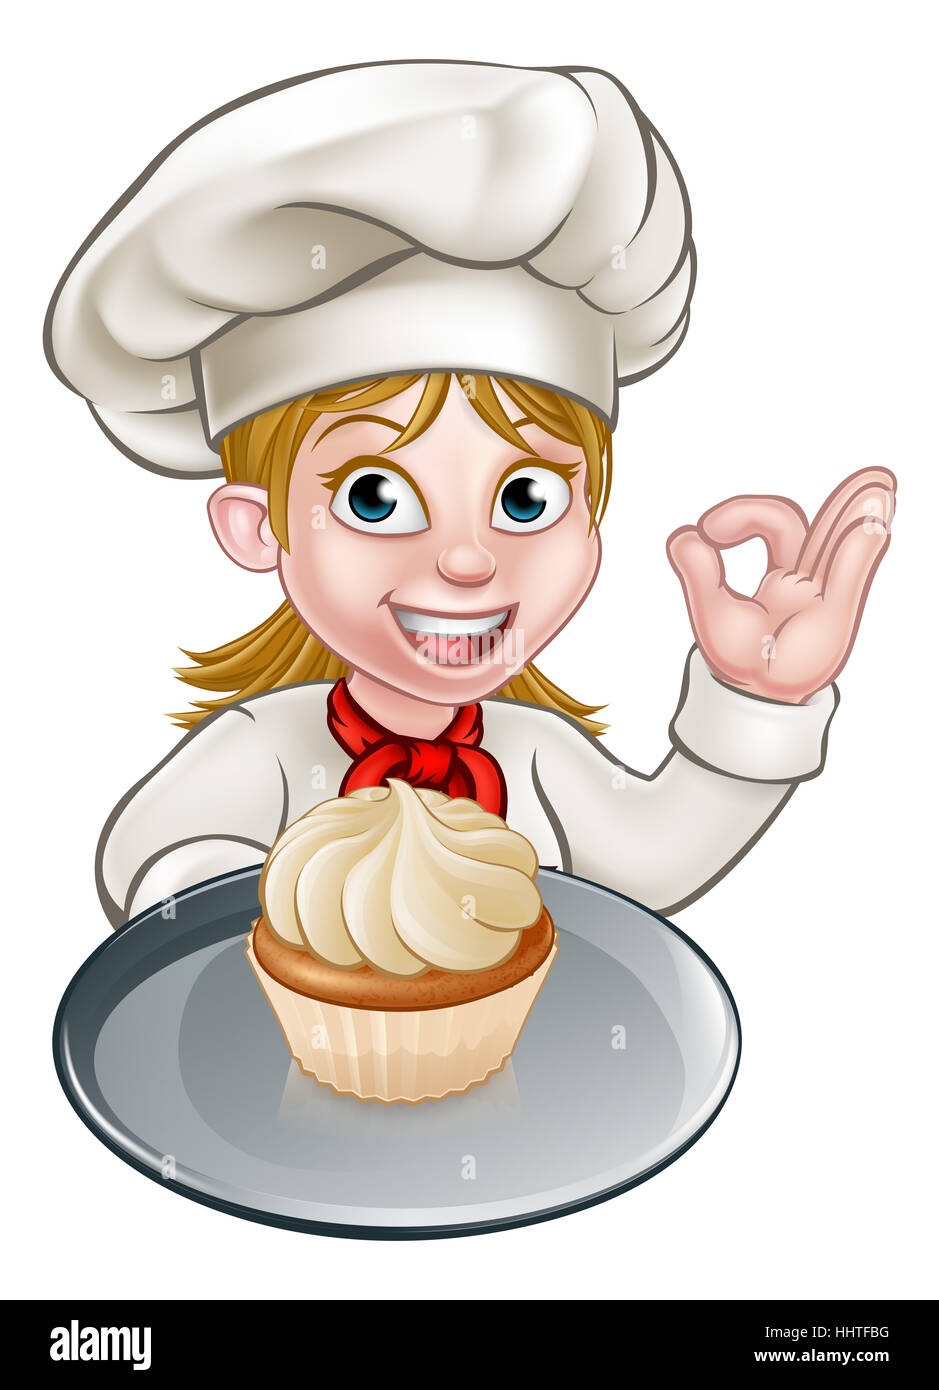 A Woman Chef Or Baker Cartoon Character Holding A Plate With A Cupcake Hhtfbg